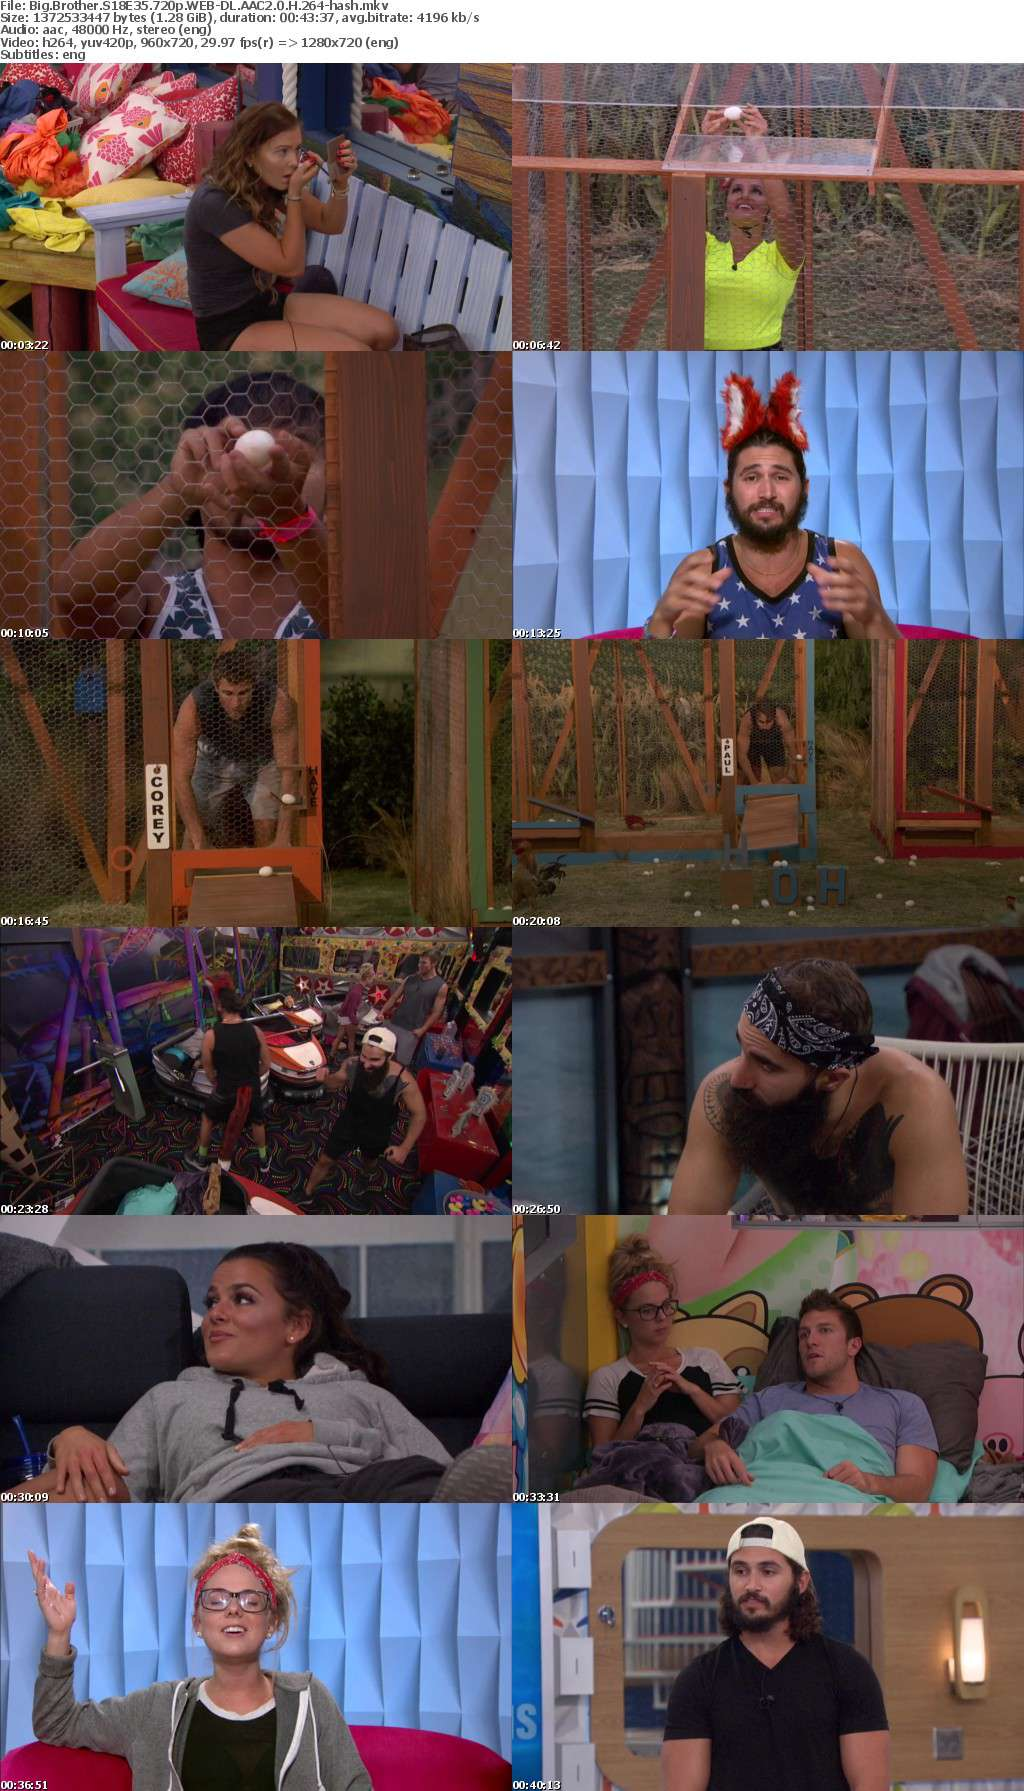 Big Brother S18E35 720p WEB-DL AAC2 0 H 264-hash